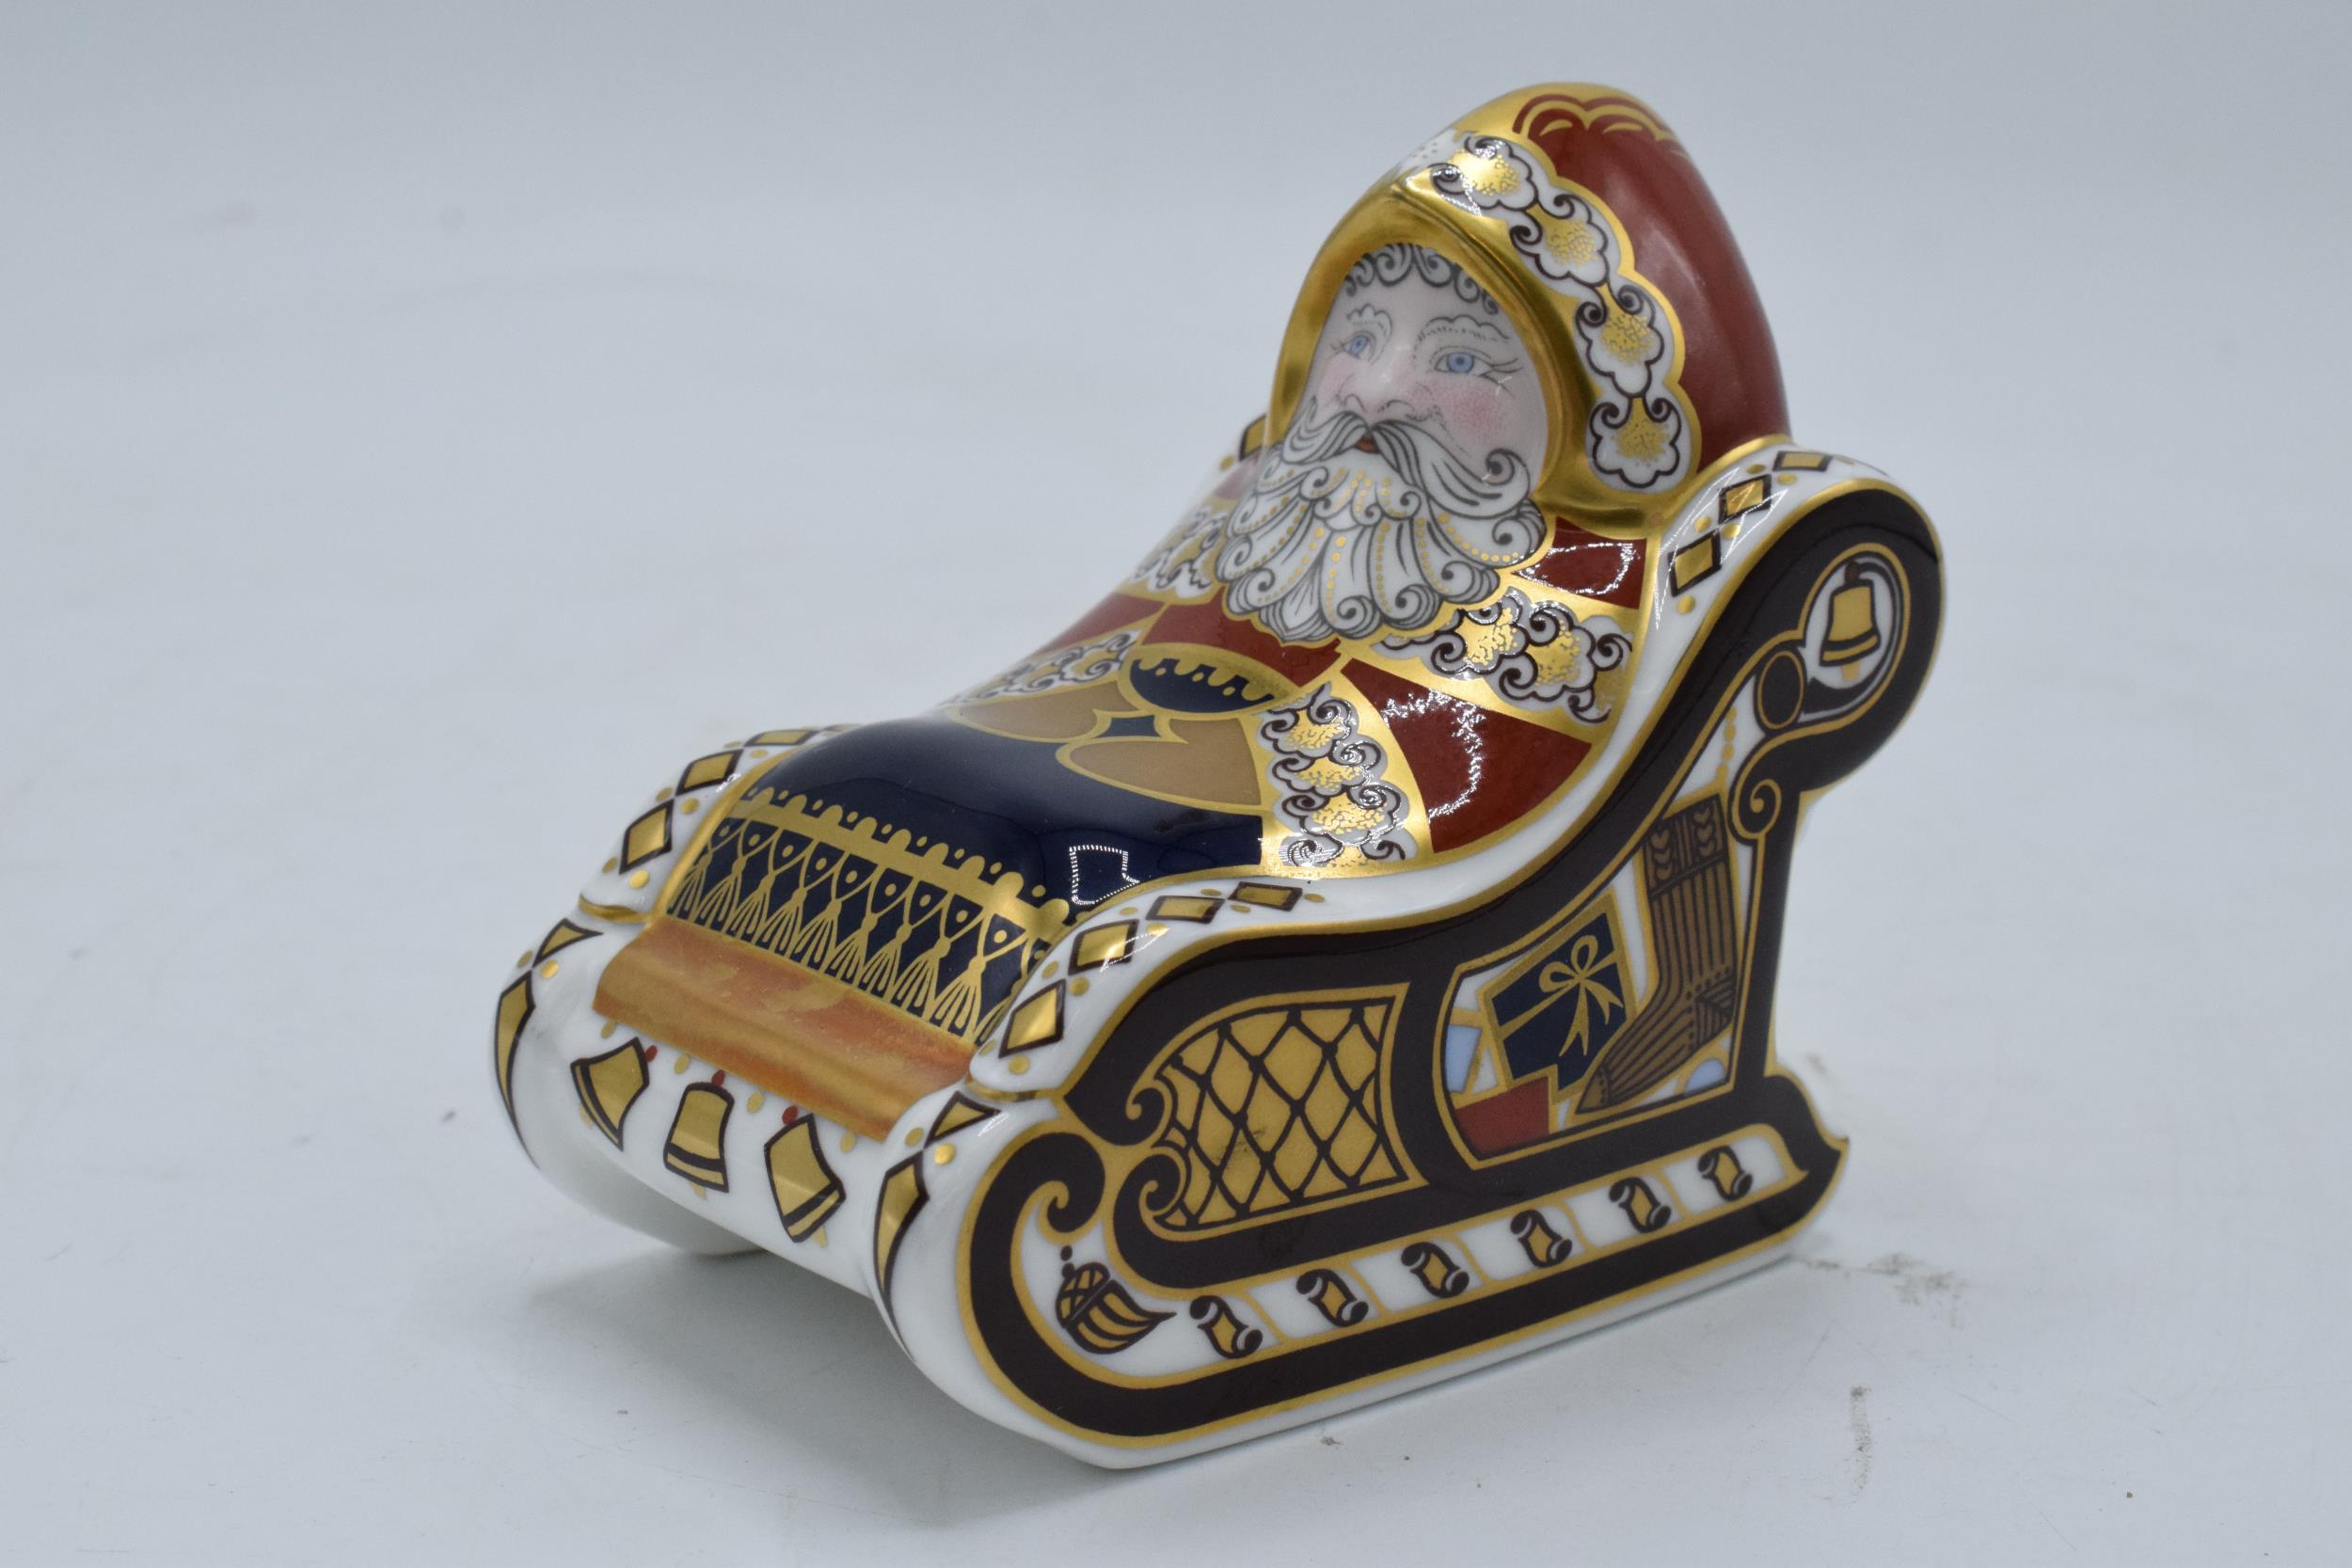 Boxed Royal Crown Derby paperweight in the form of a Santa and his Sleigh. First quality with